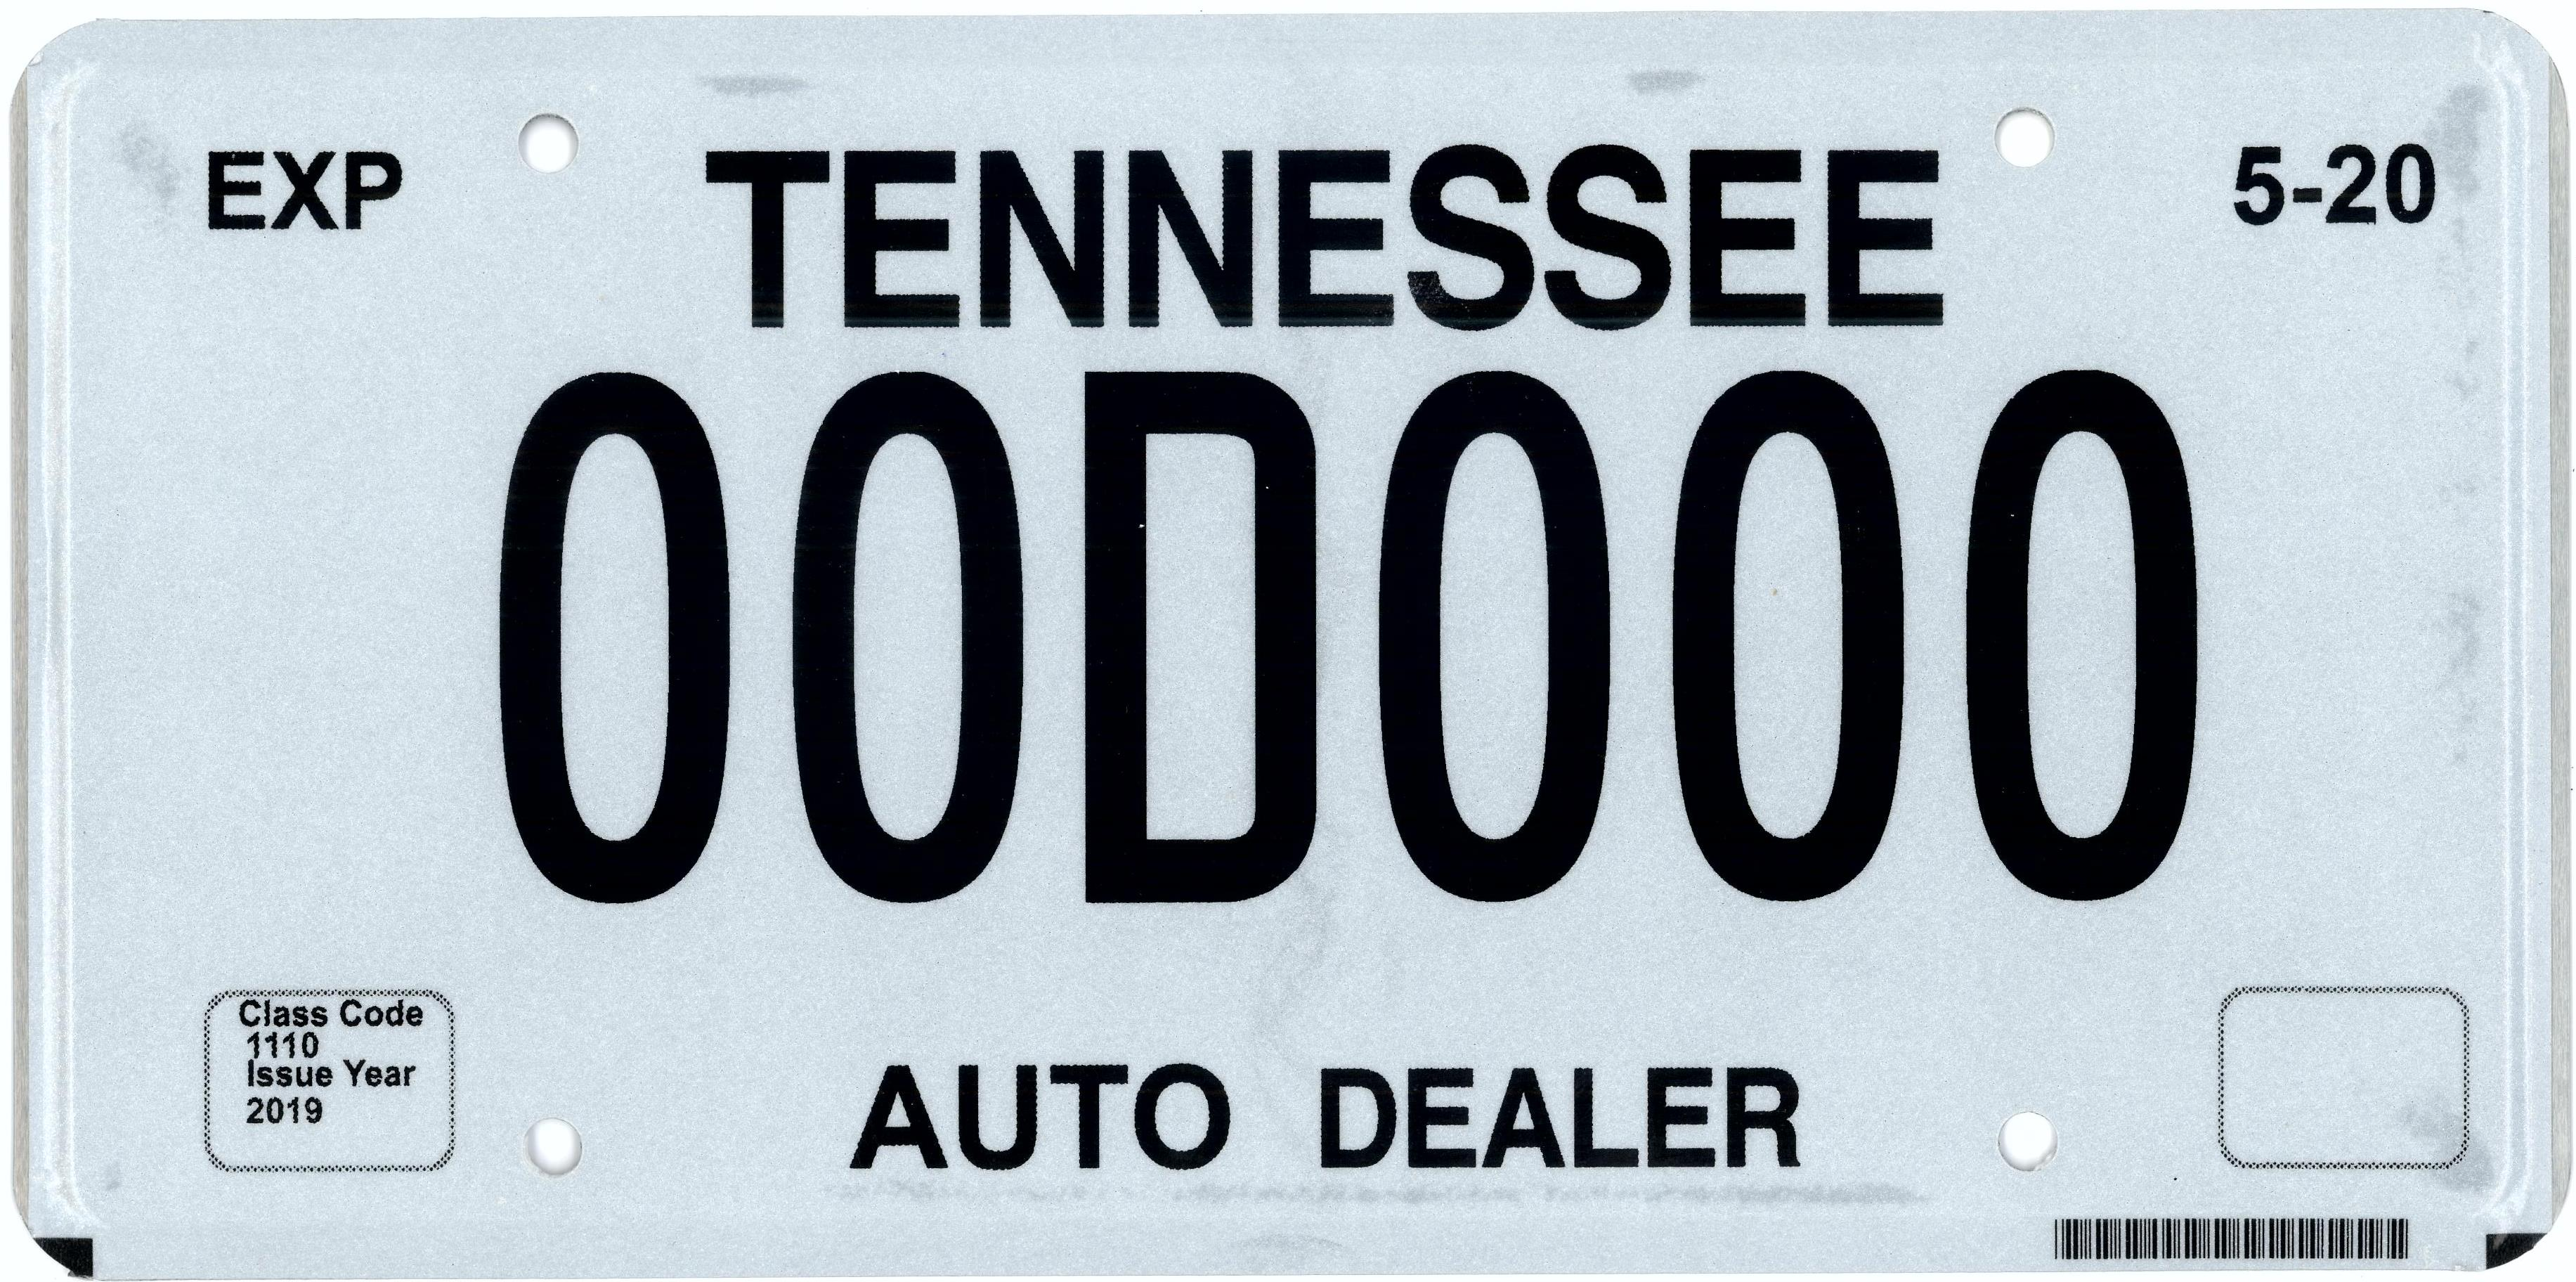 DEALER PLATES OVERVIEW – County Clerks Guide